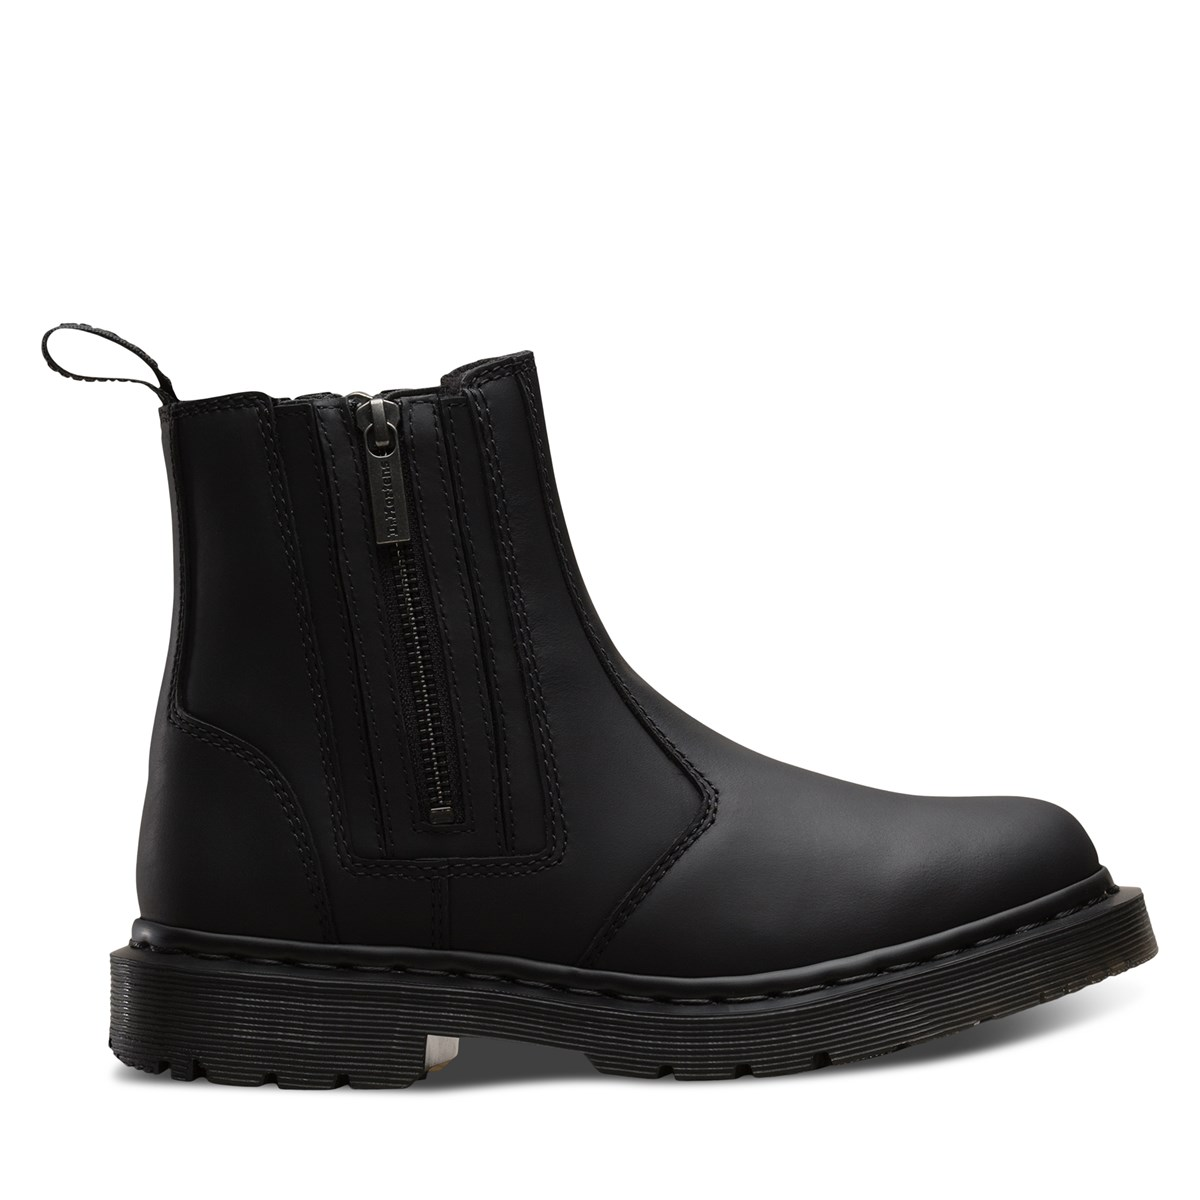 Women's 2976 Alyson Boots in Black